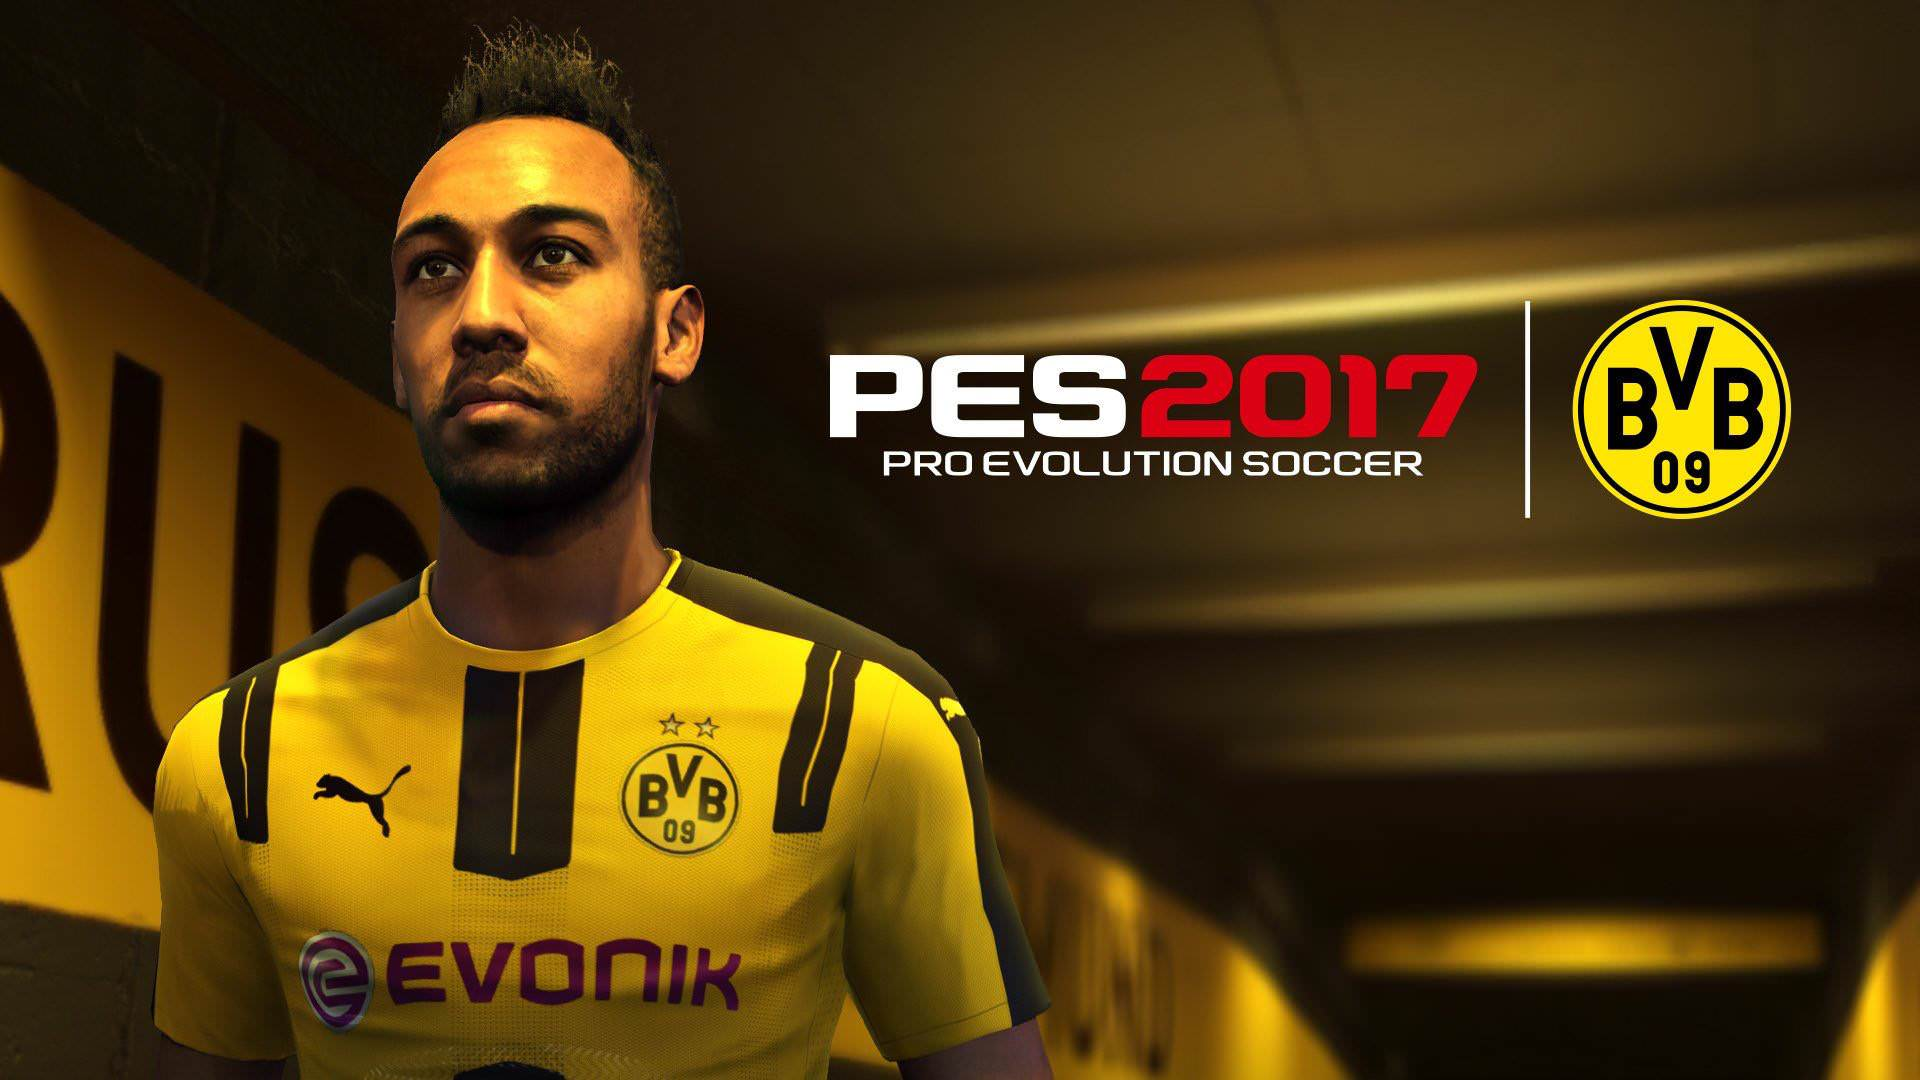 PES 2017 – Borussia Dortmund Partnership with Konami